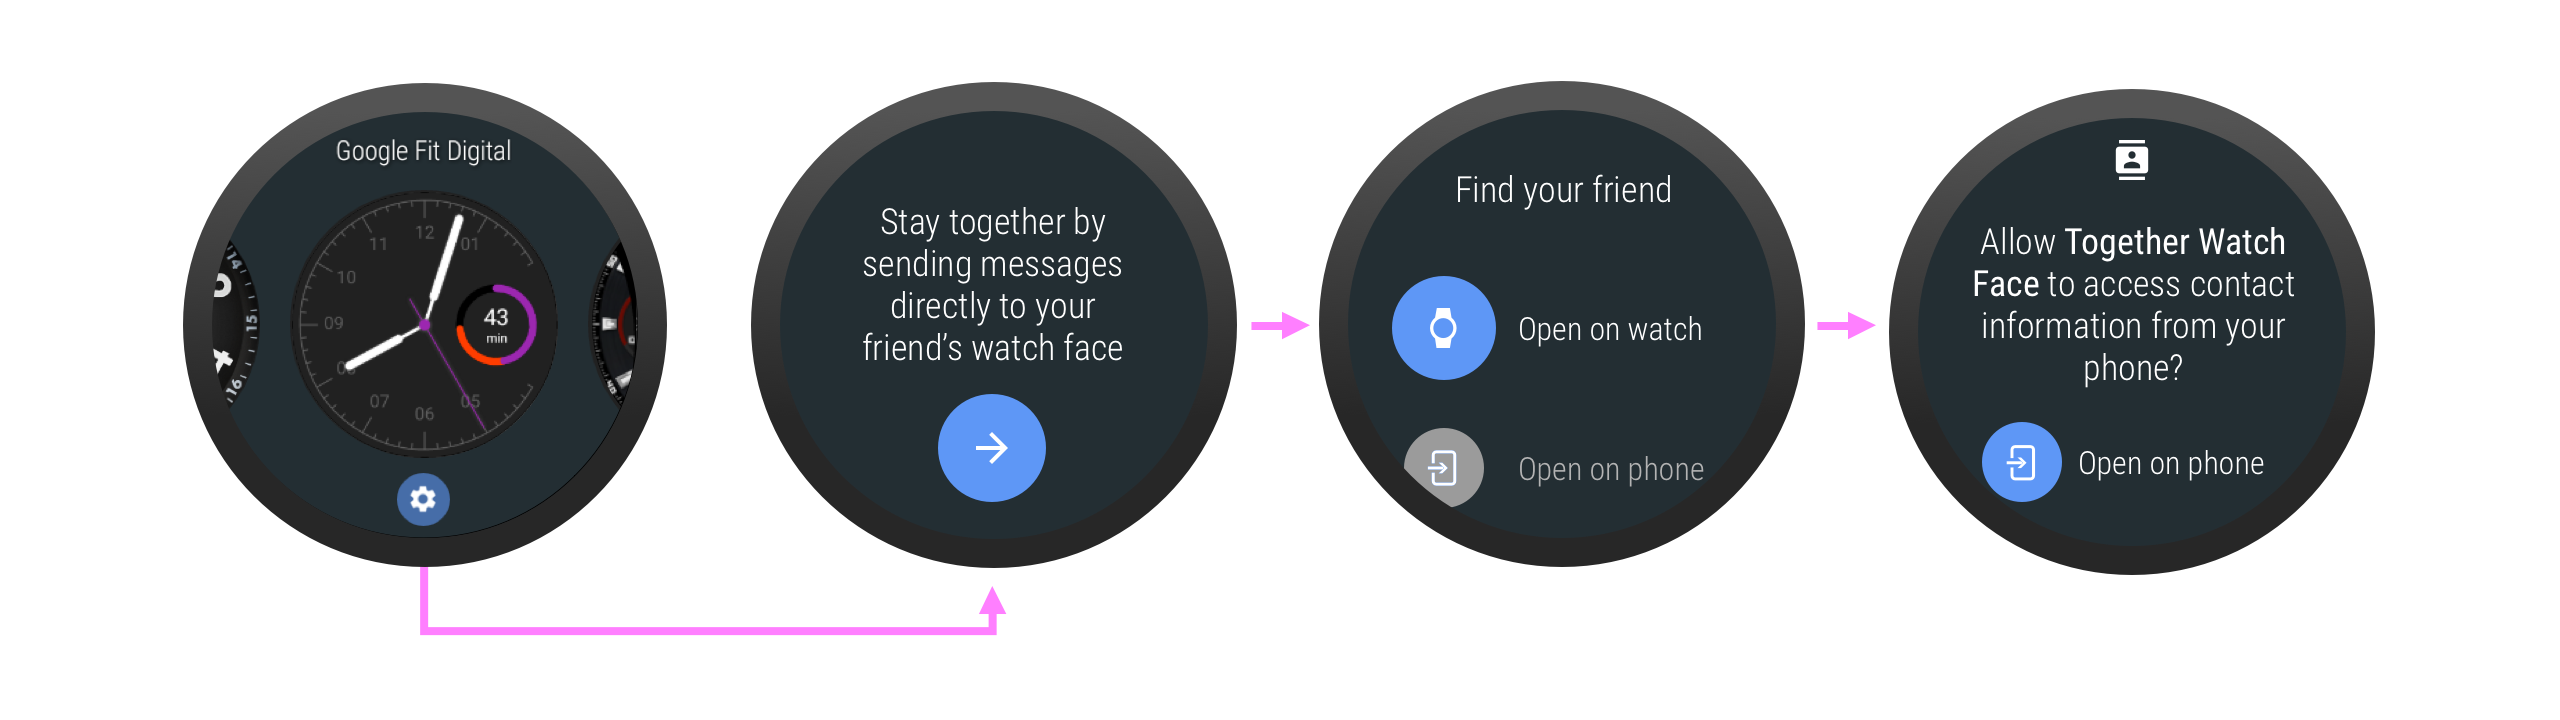 When requesting a permission on launch, the app can explain why it needs the permission.